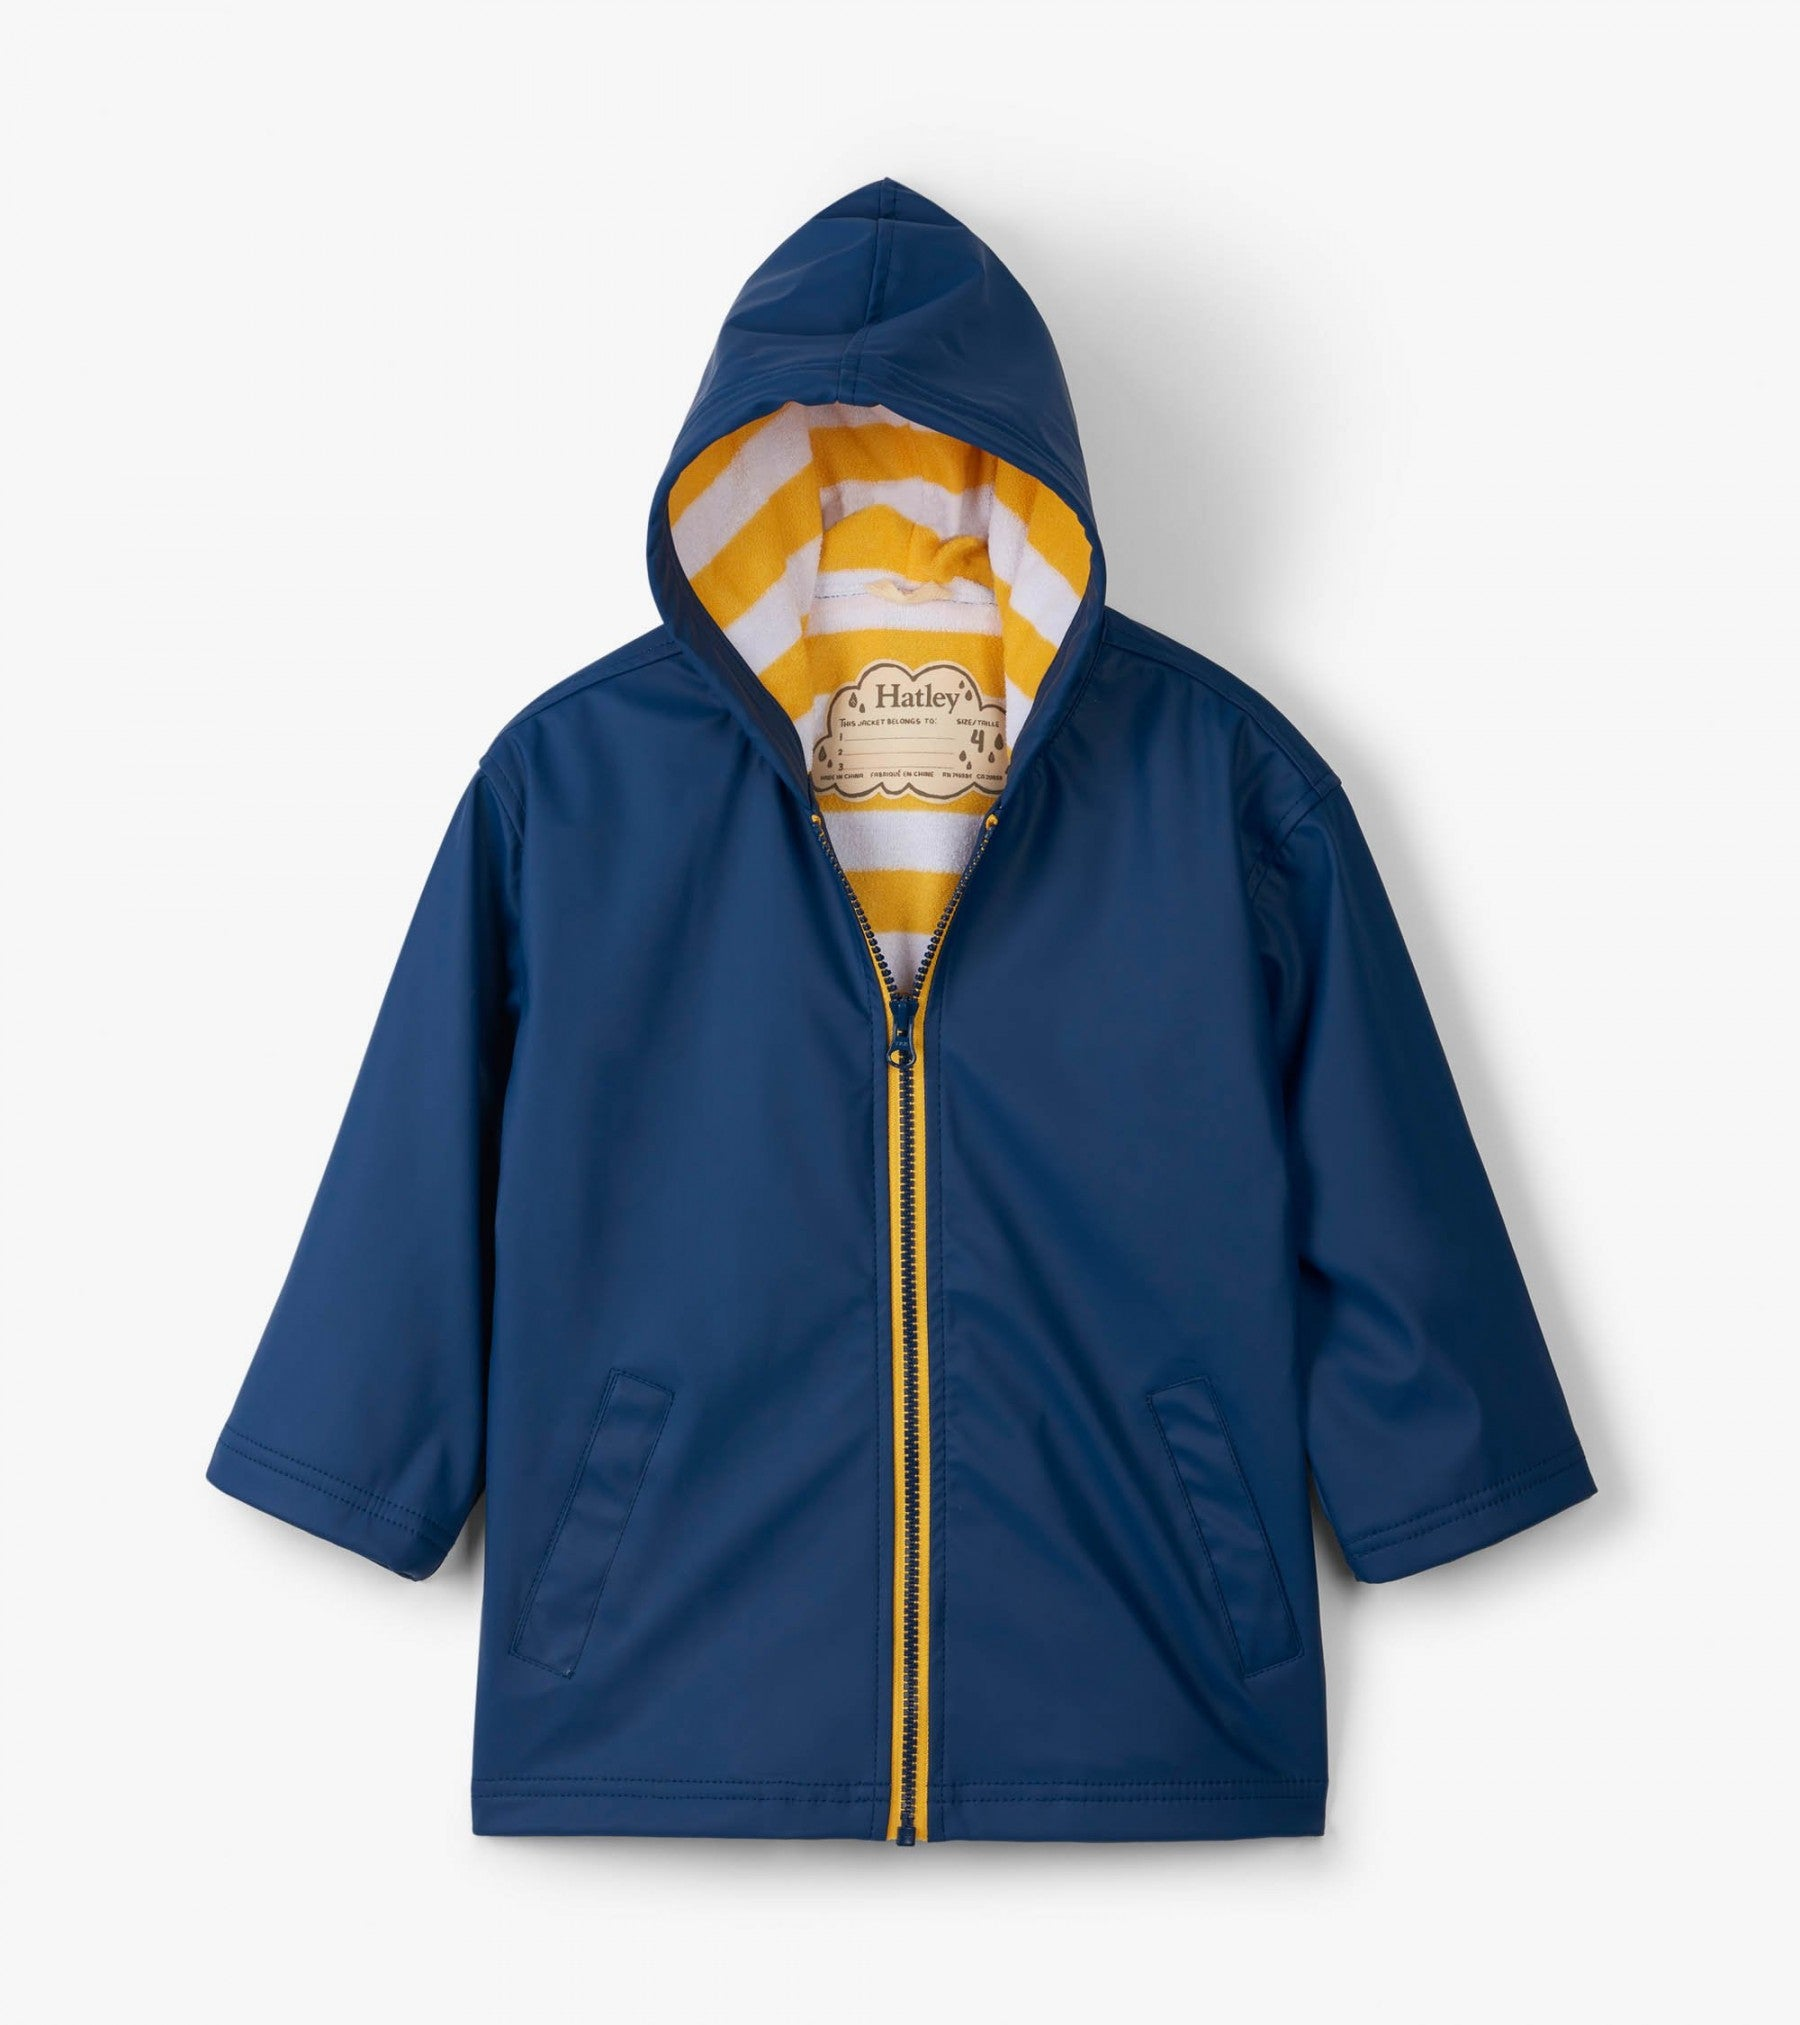 Hatley Navy with Yellow Stripe Lining Splash Jacket SALE